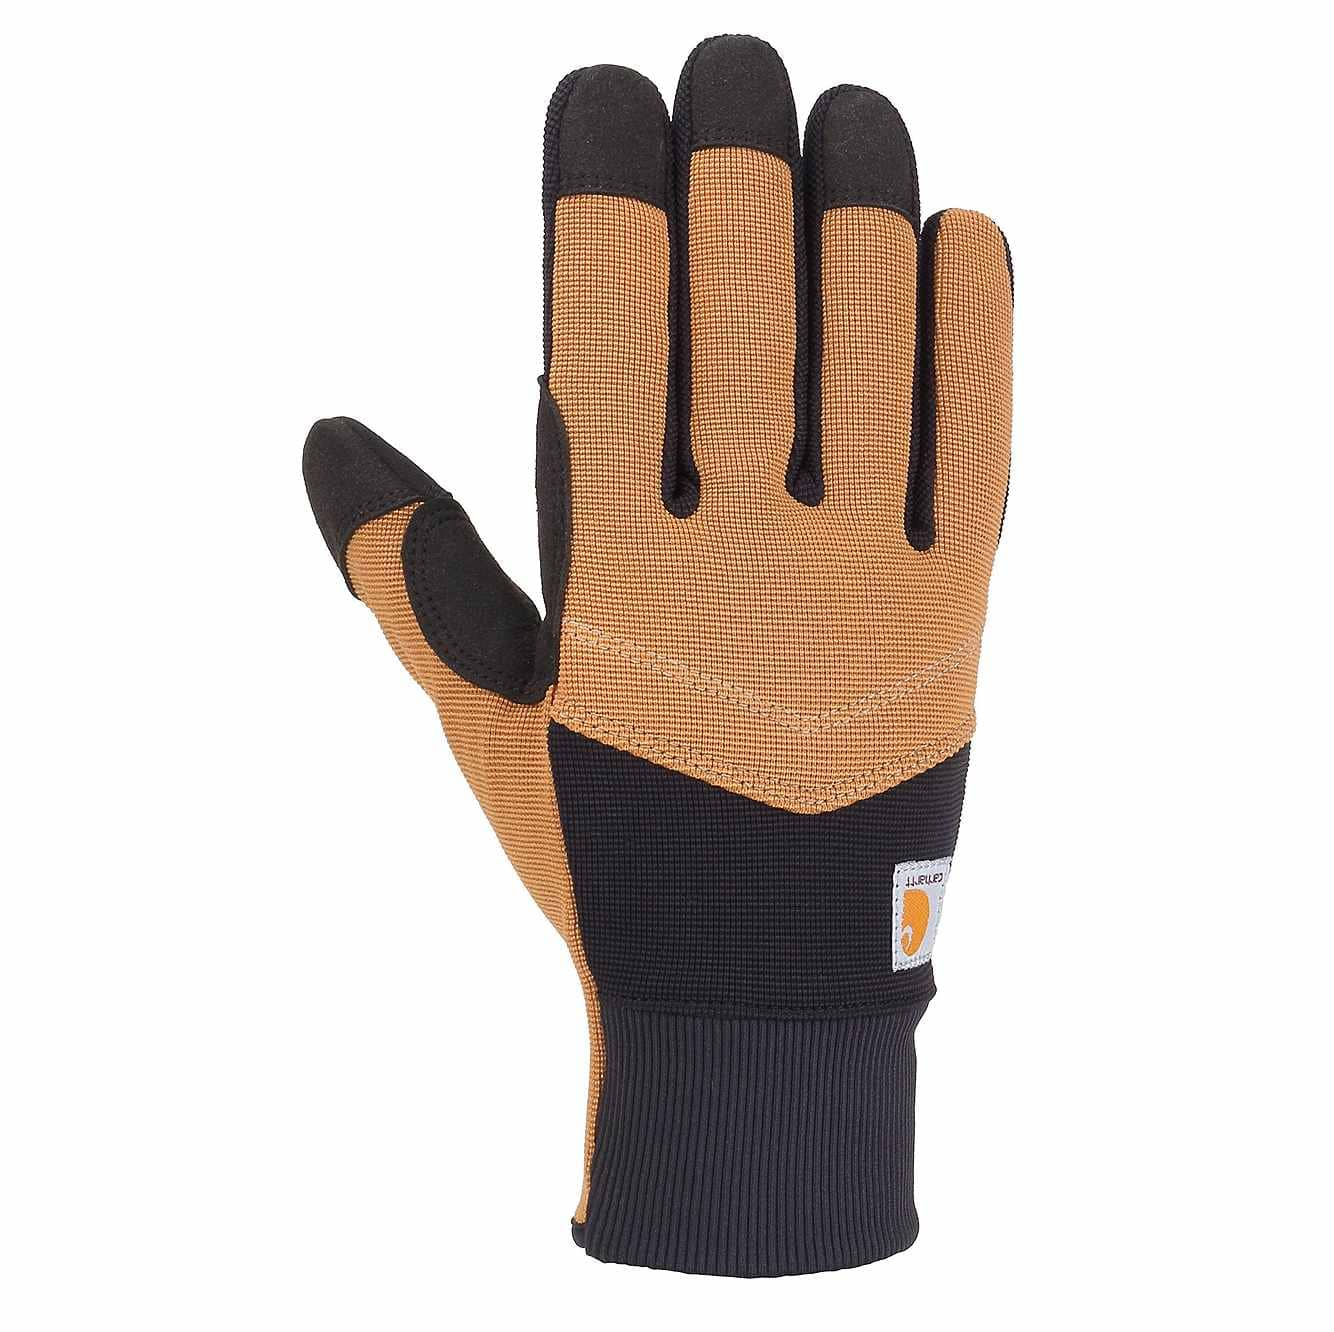 Picture of Outpost High Dexterity Glove in Botanic Beauty